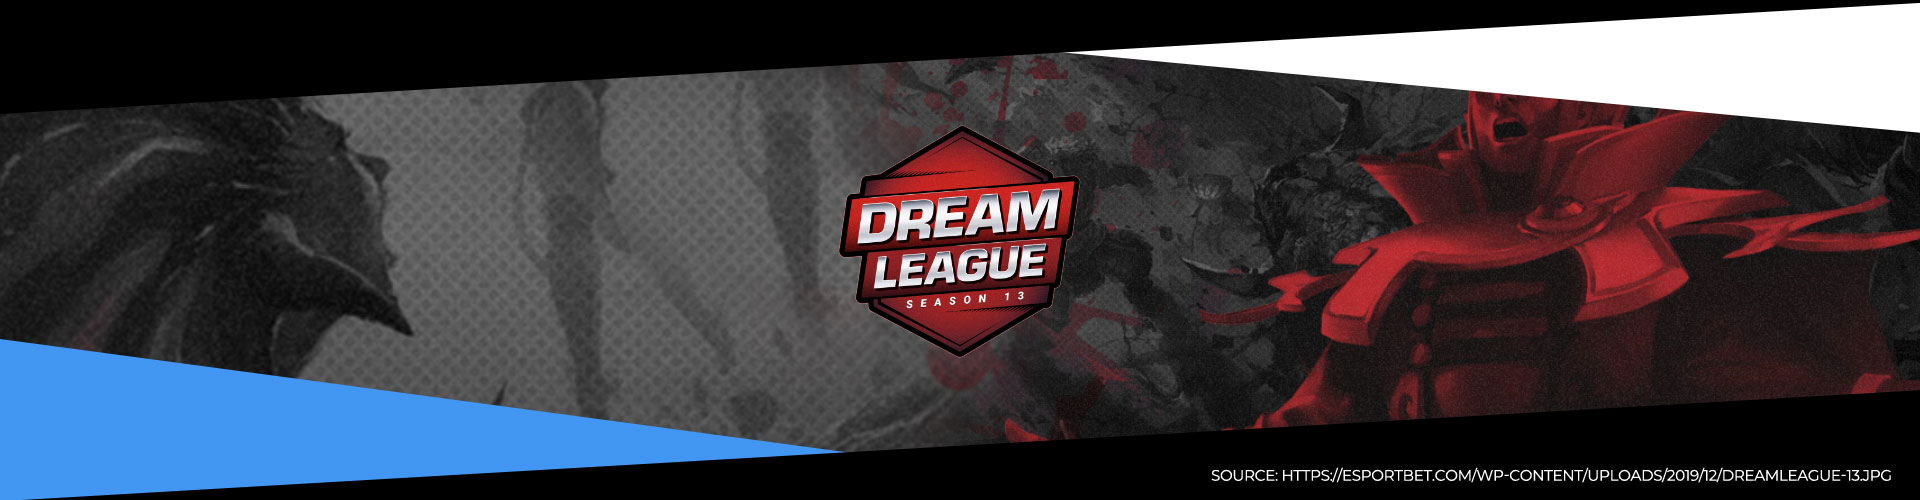 Eventsida för DreamLeague säsong 13 med information om turneringen.